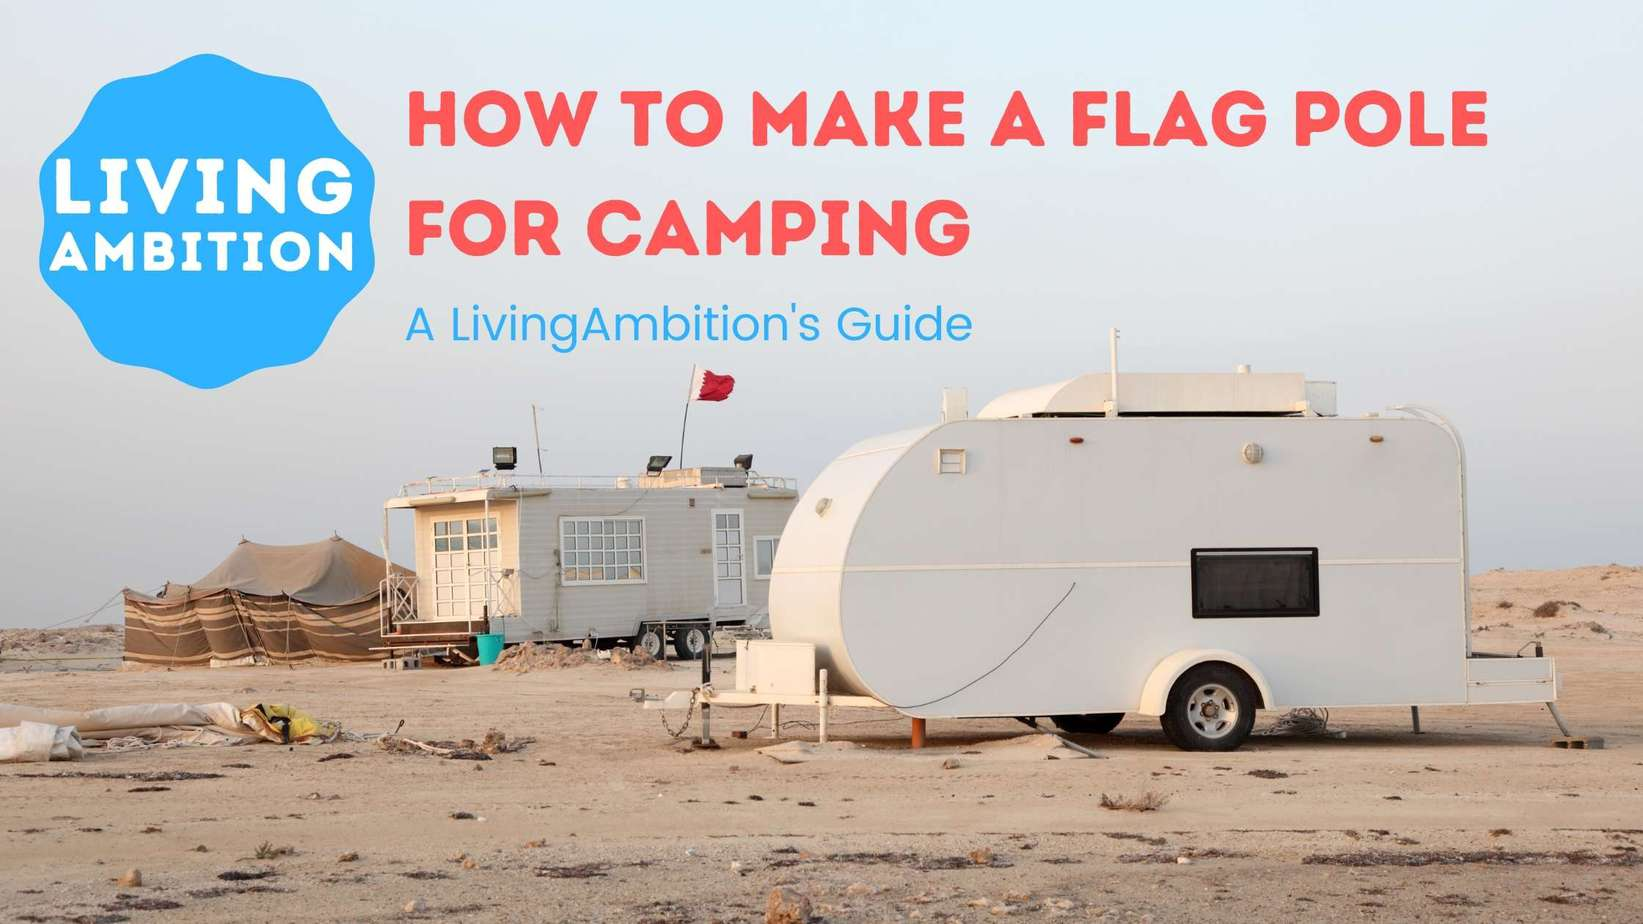 how to make a flag pole for camping